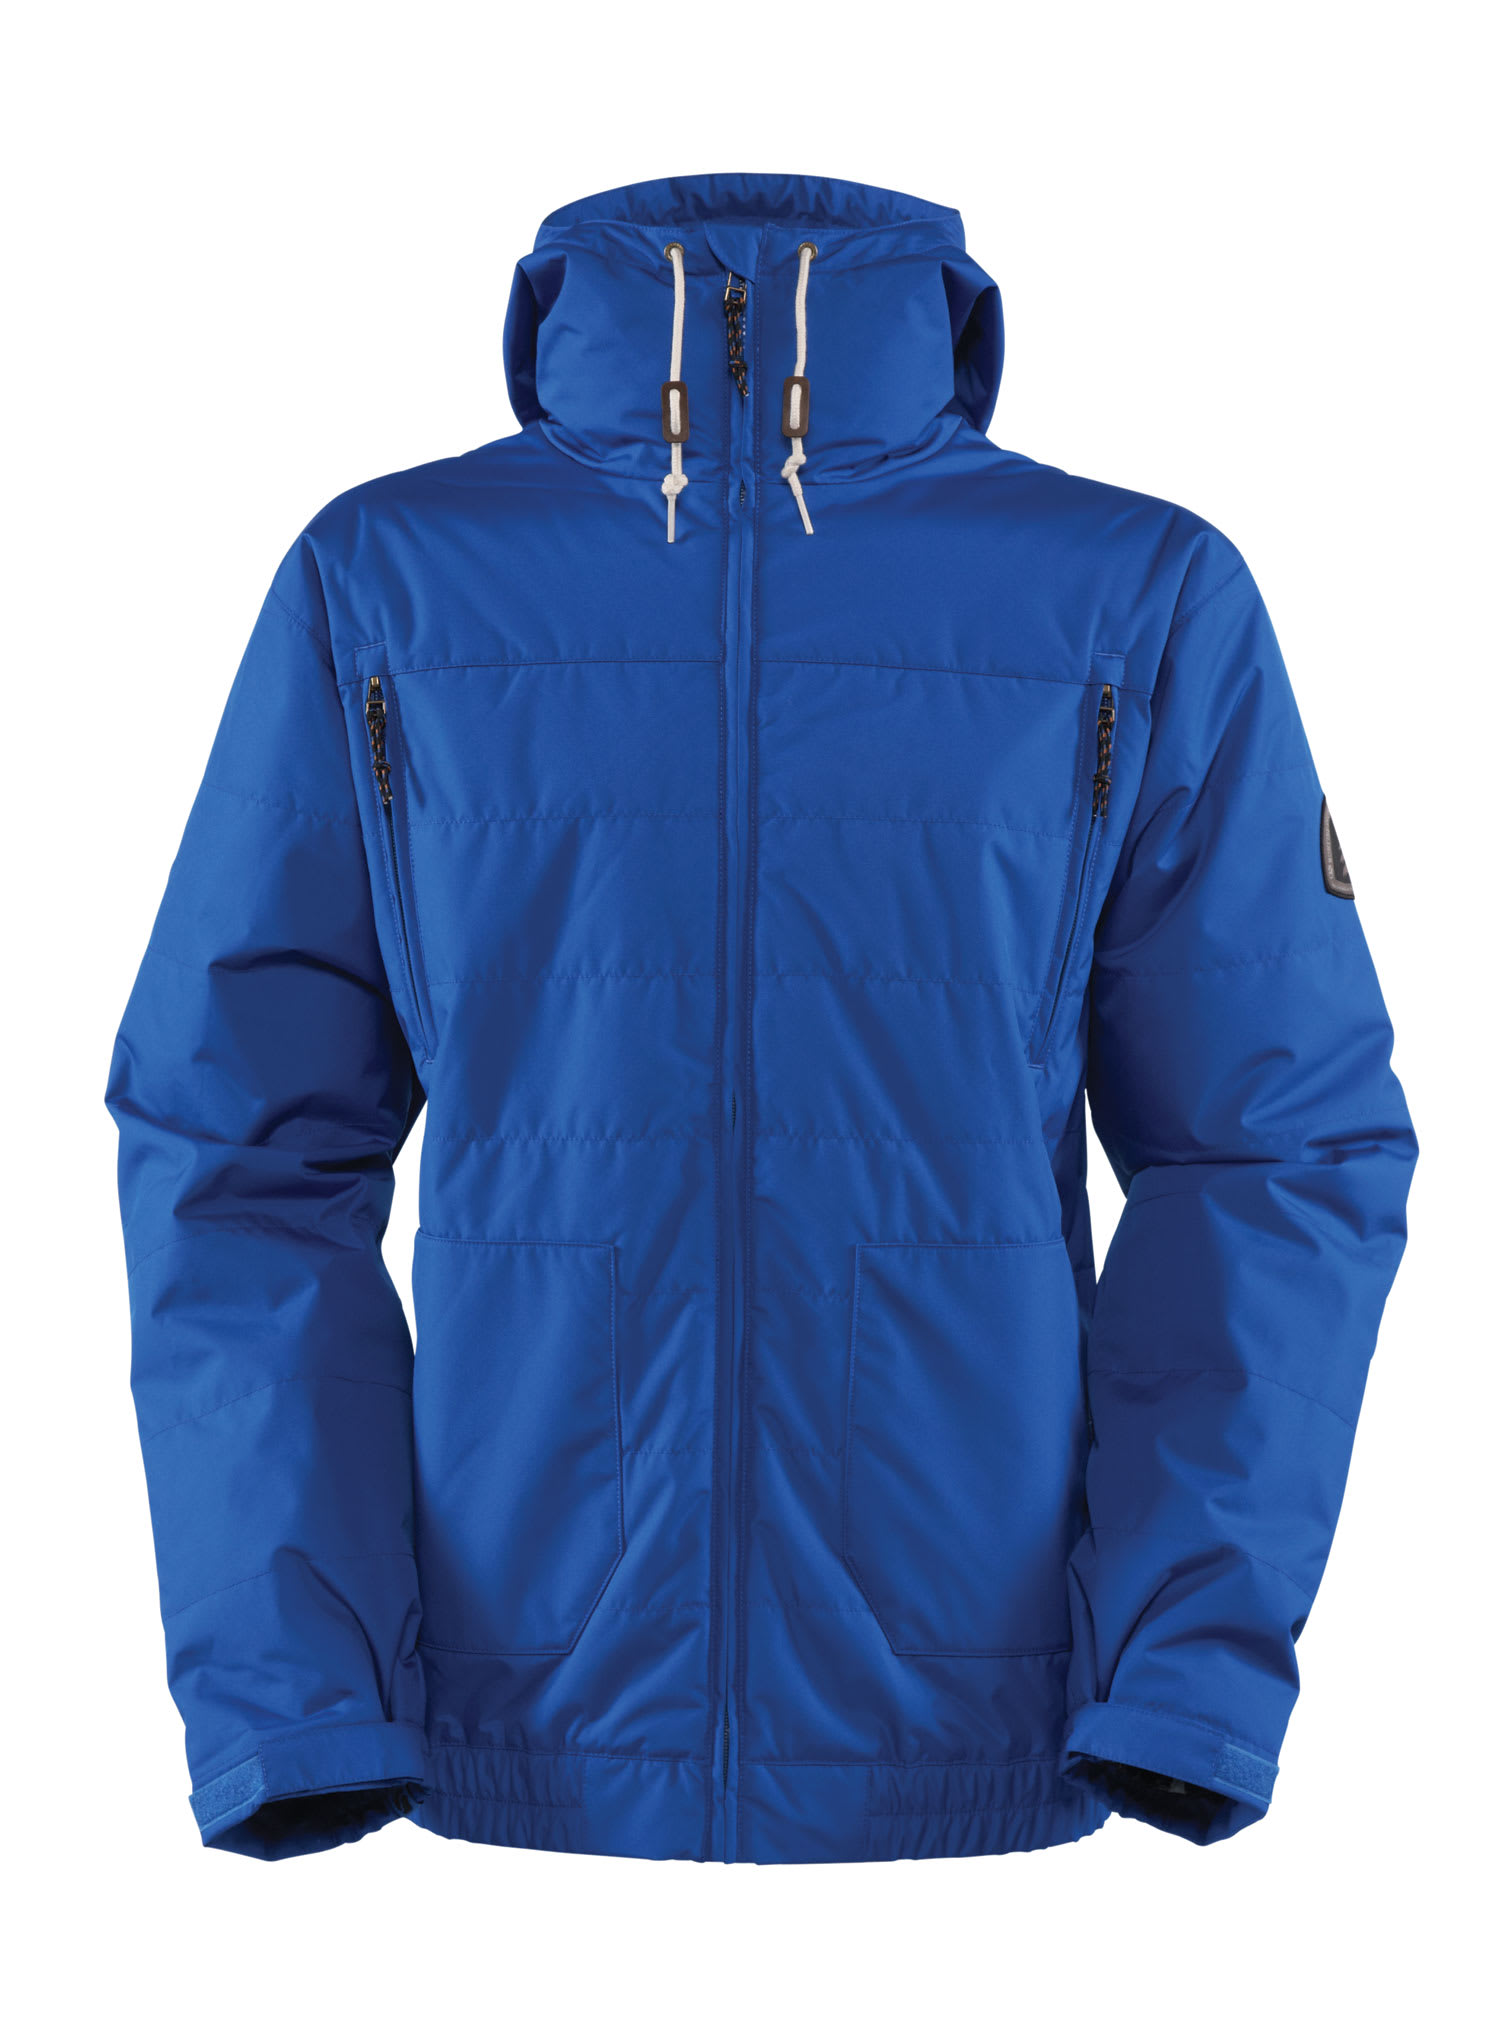 Bonfire Essential Awesome Snowboard Jacket True Blue - Men's